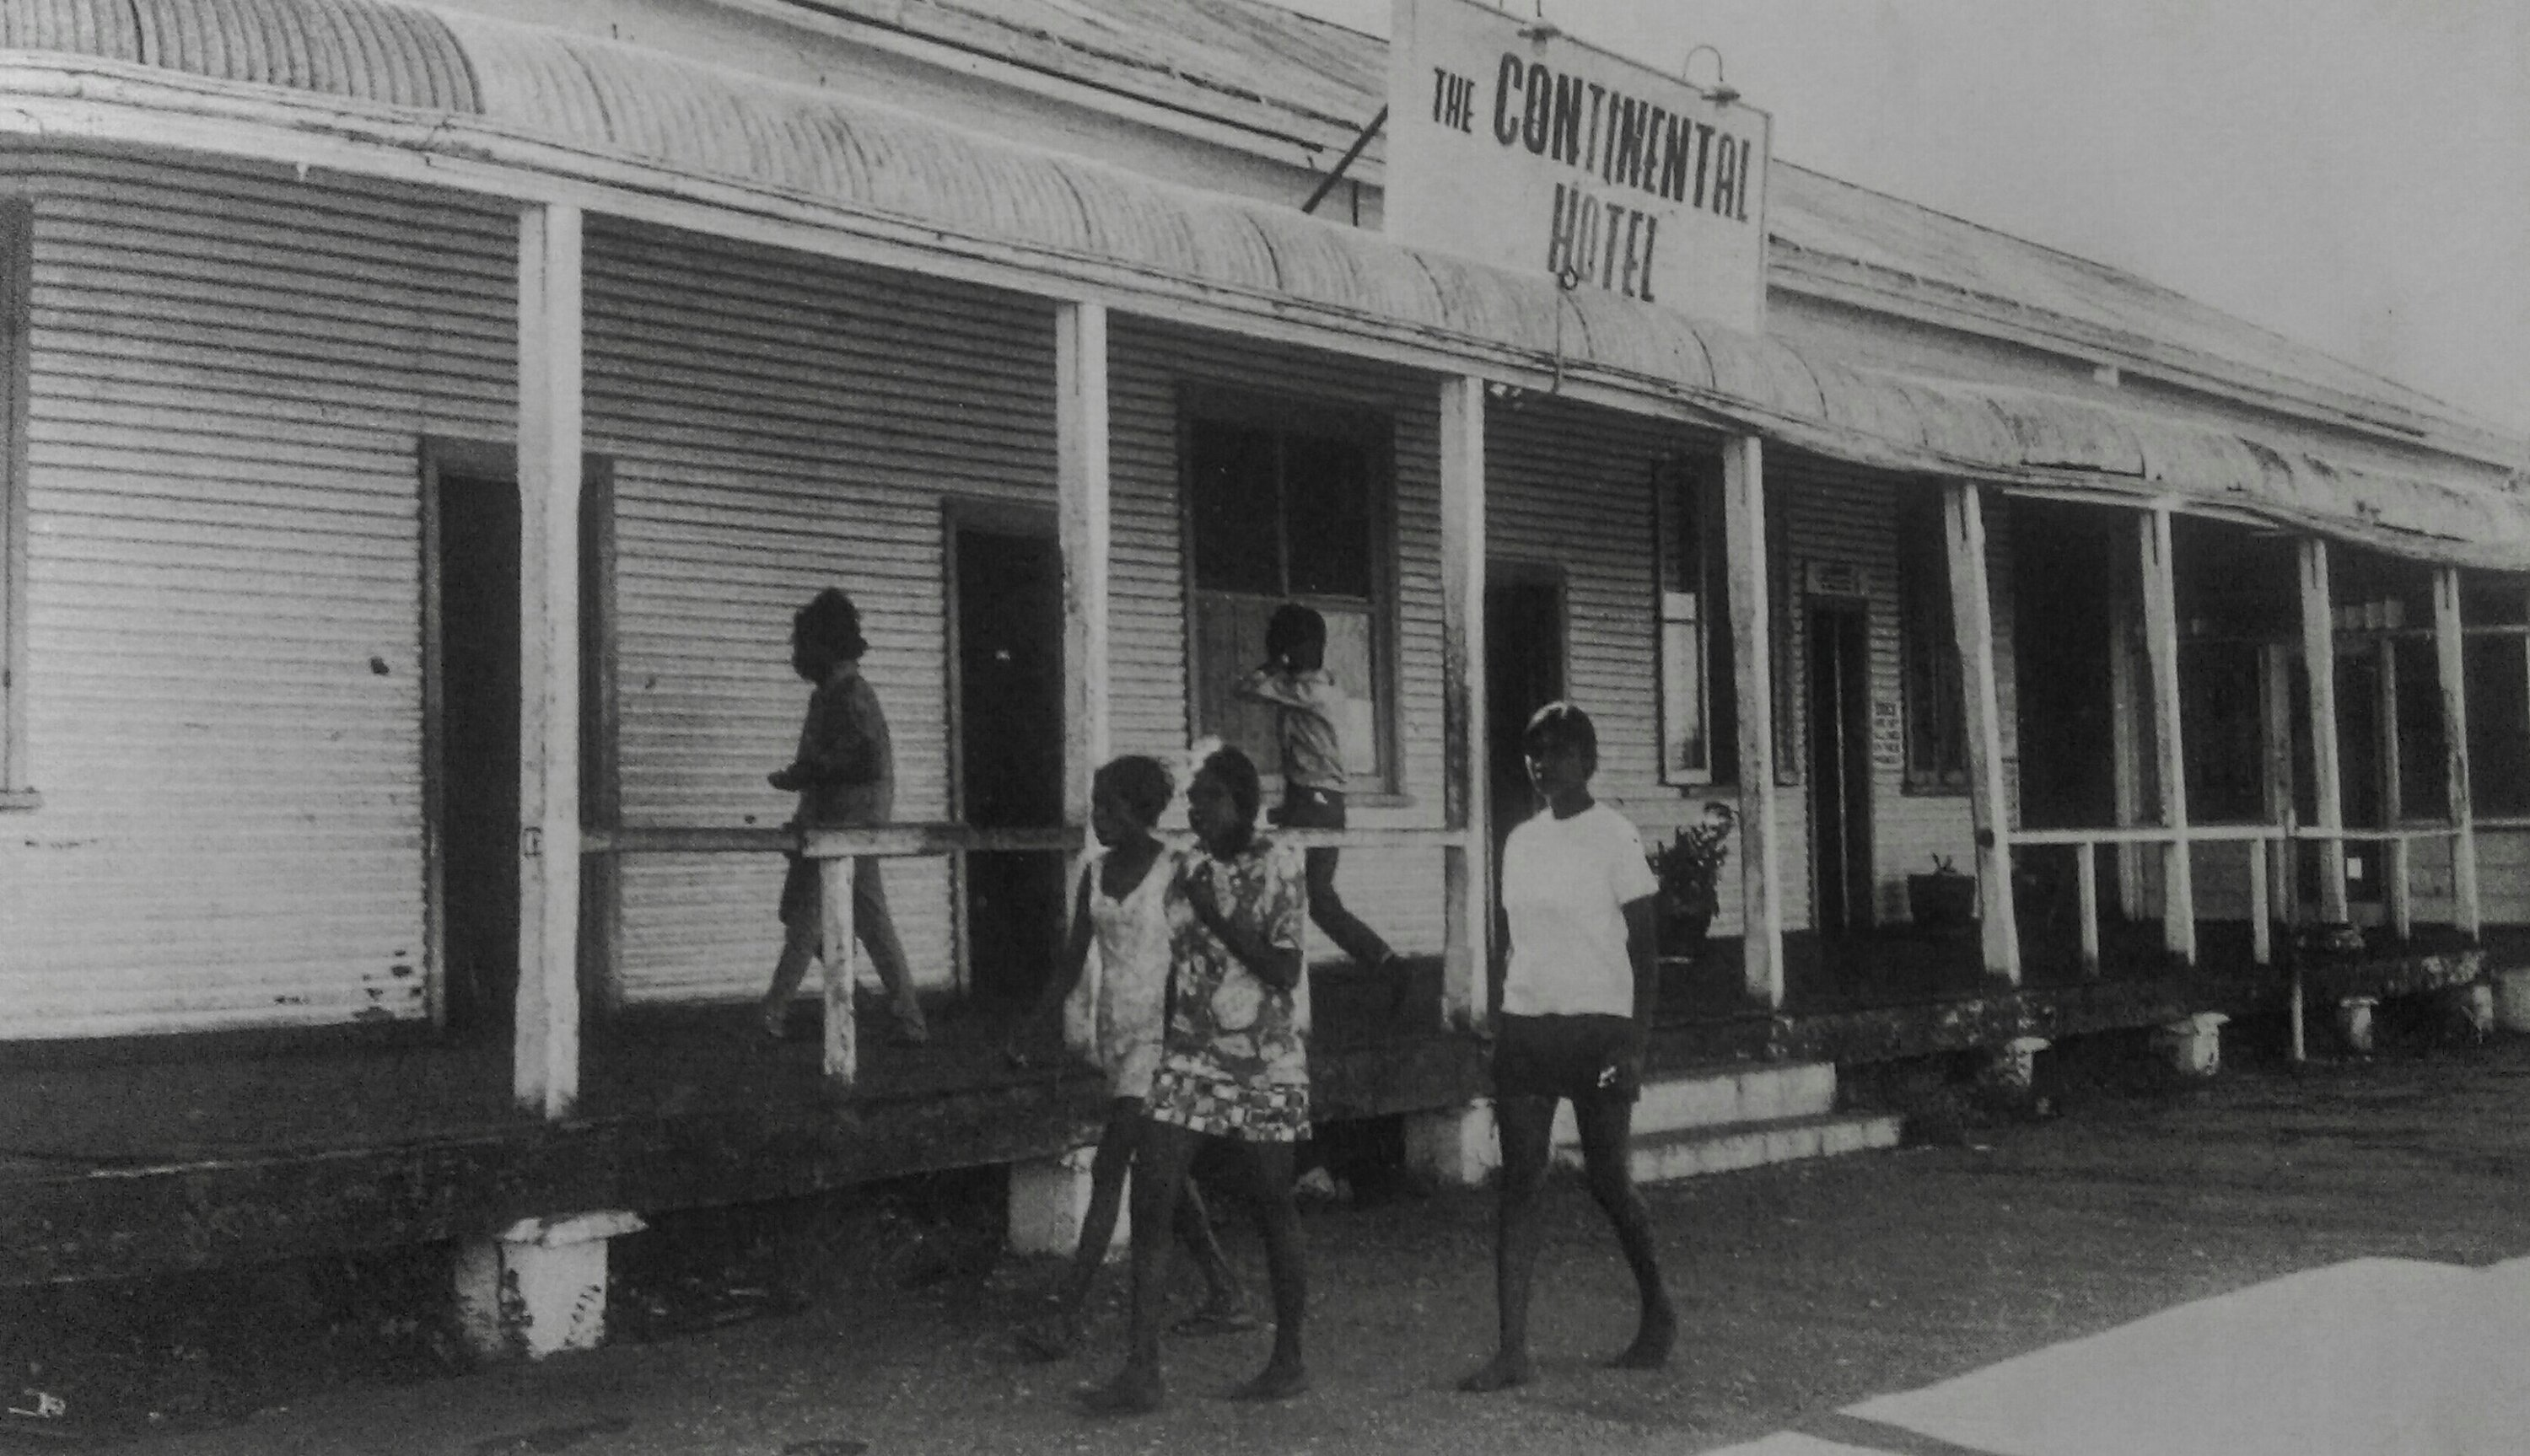 Continental Hotel, Broome